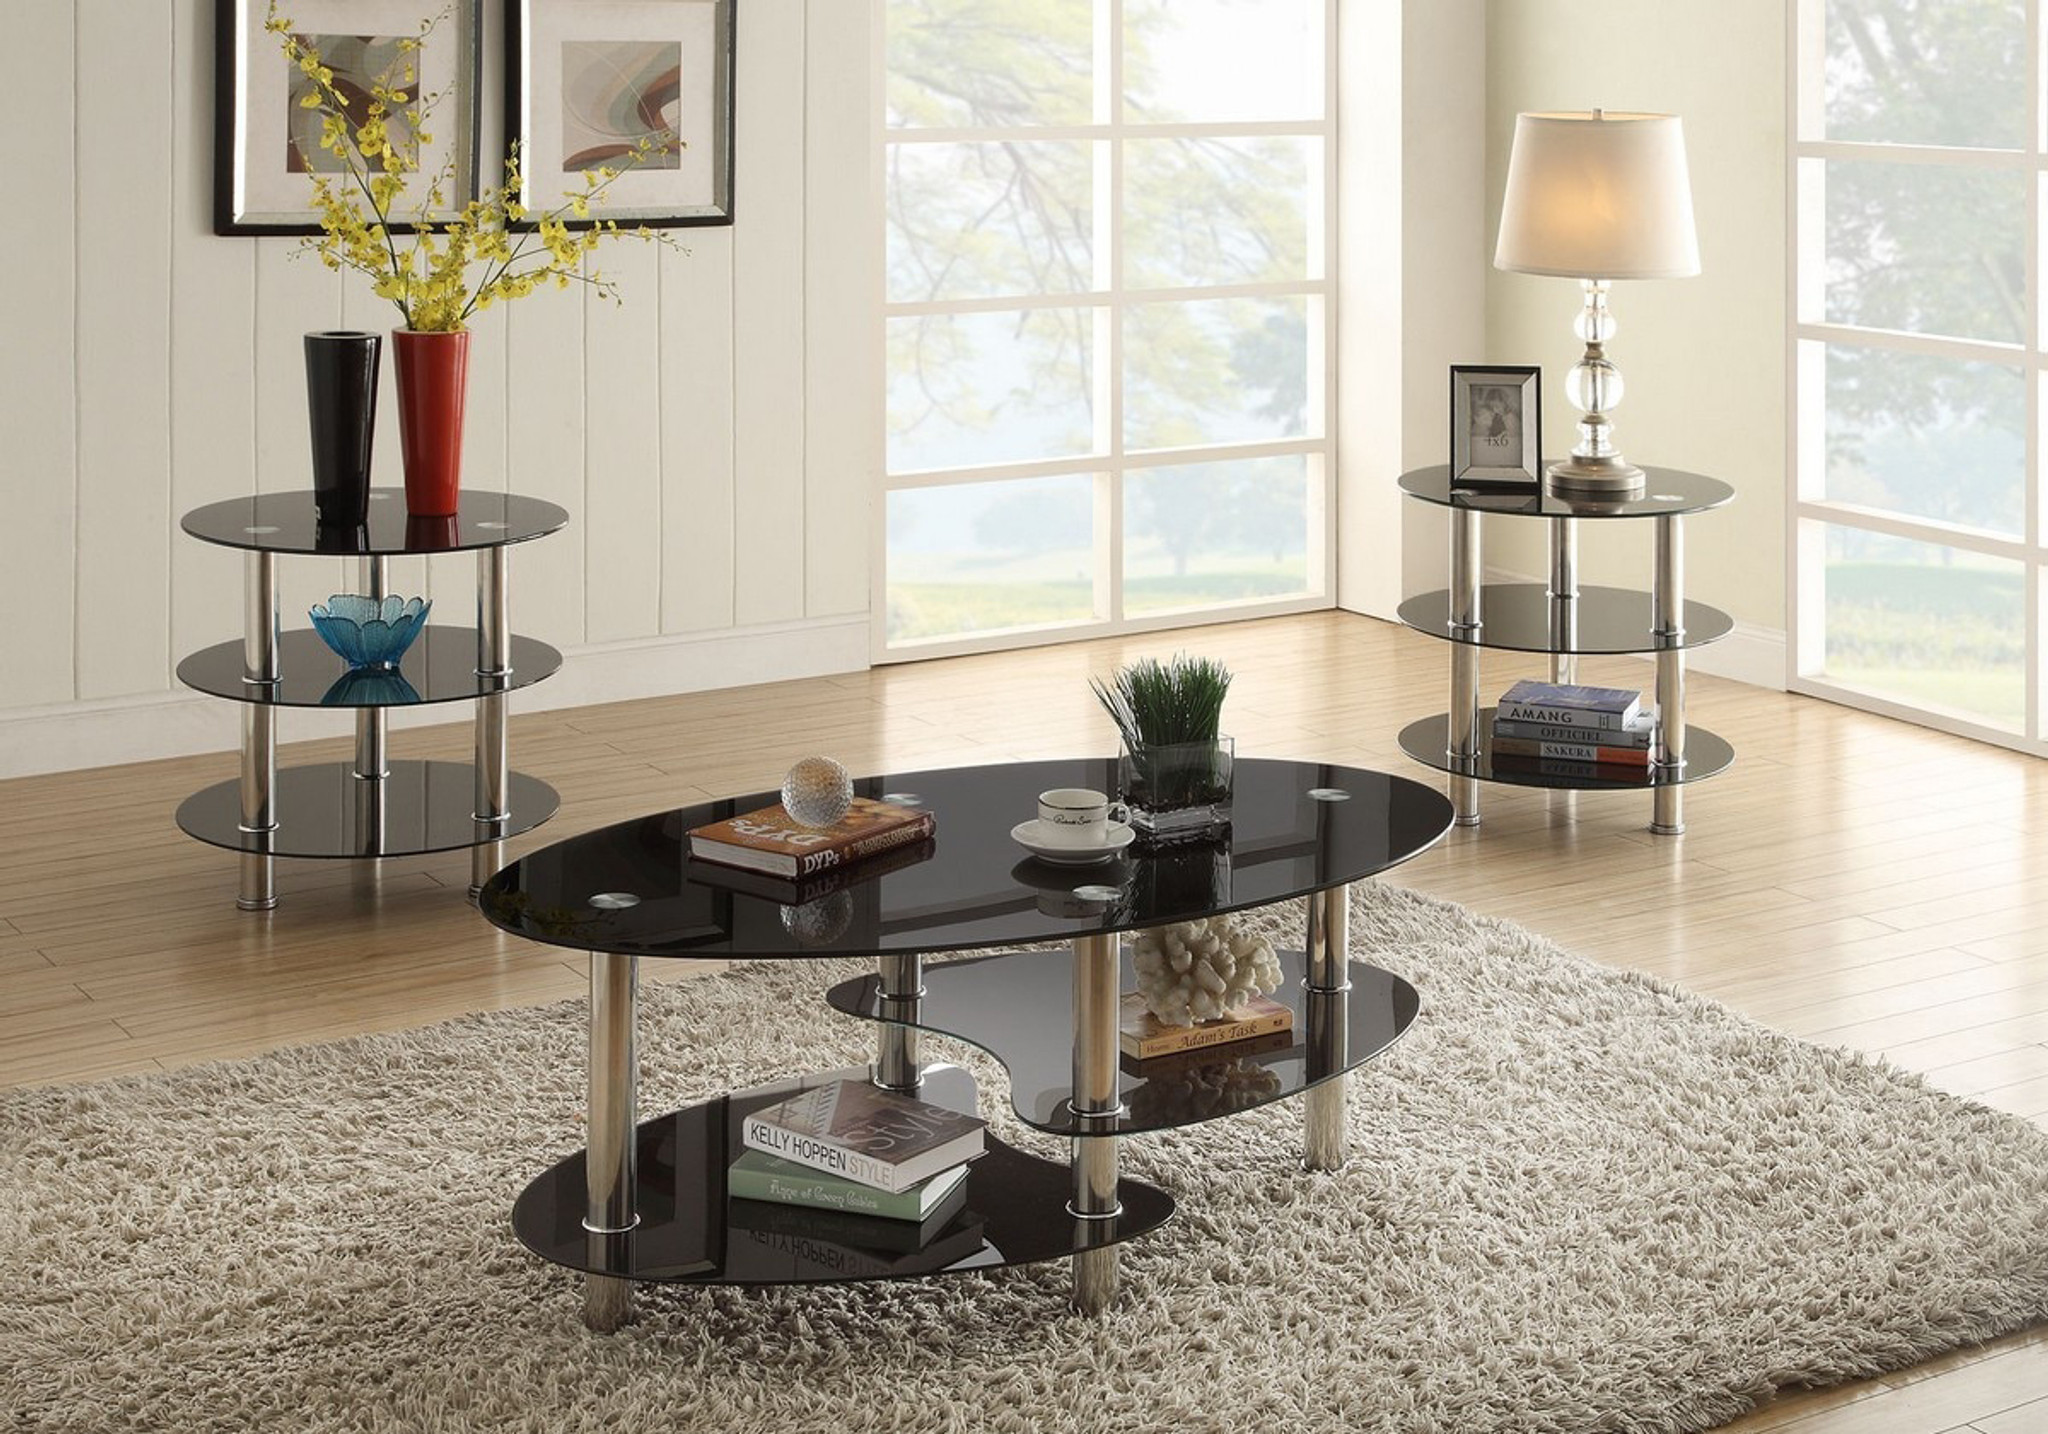 - KASSA MALL HOME FURNITURE - F3054 - 3PC Tempered Glass Top Coffee